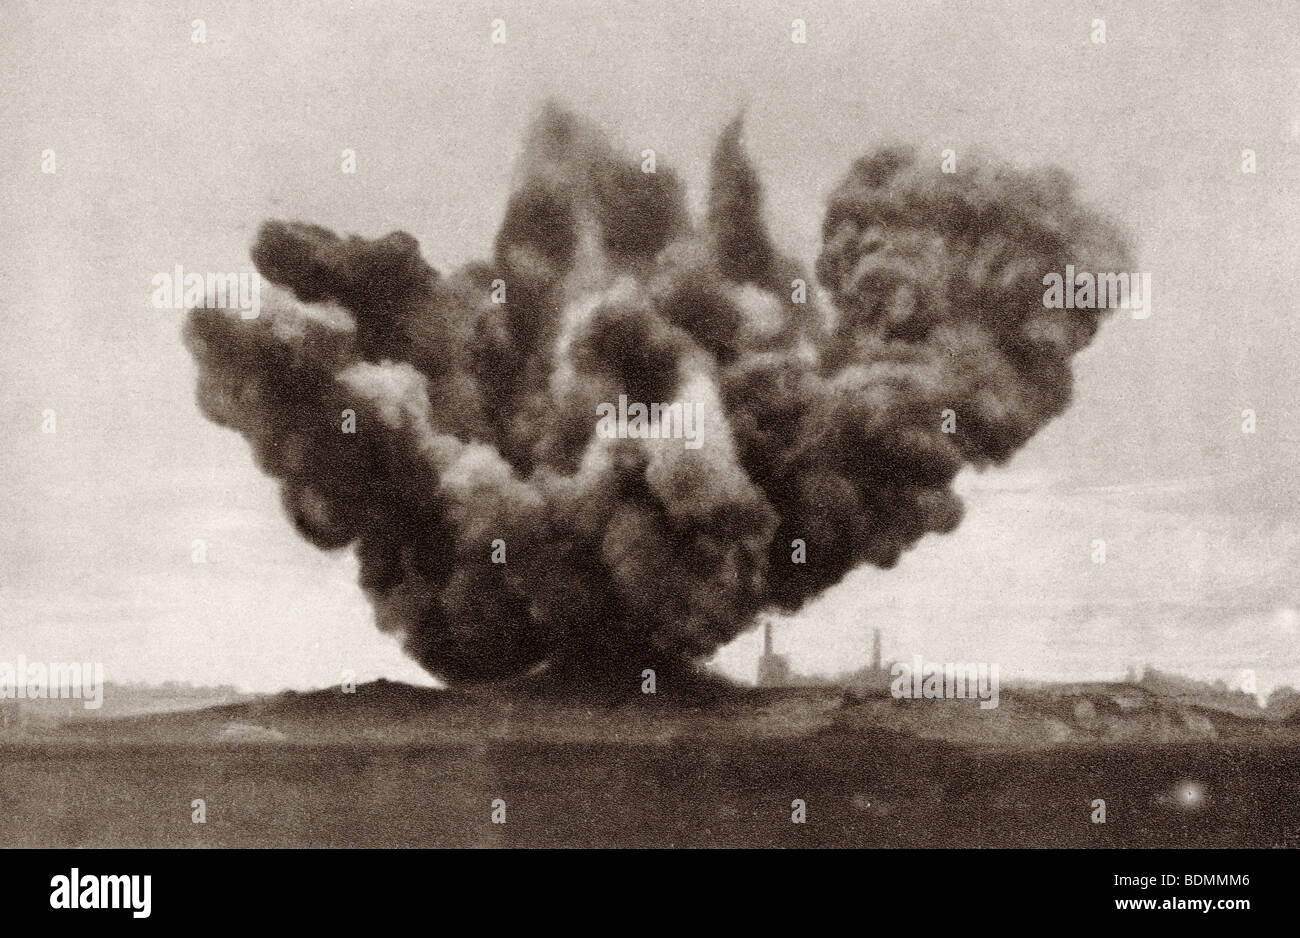 Exploding artillery shell during the First World War. - Stock Image